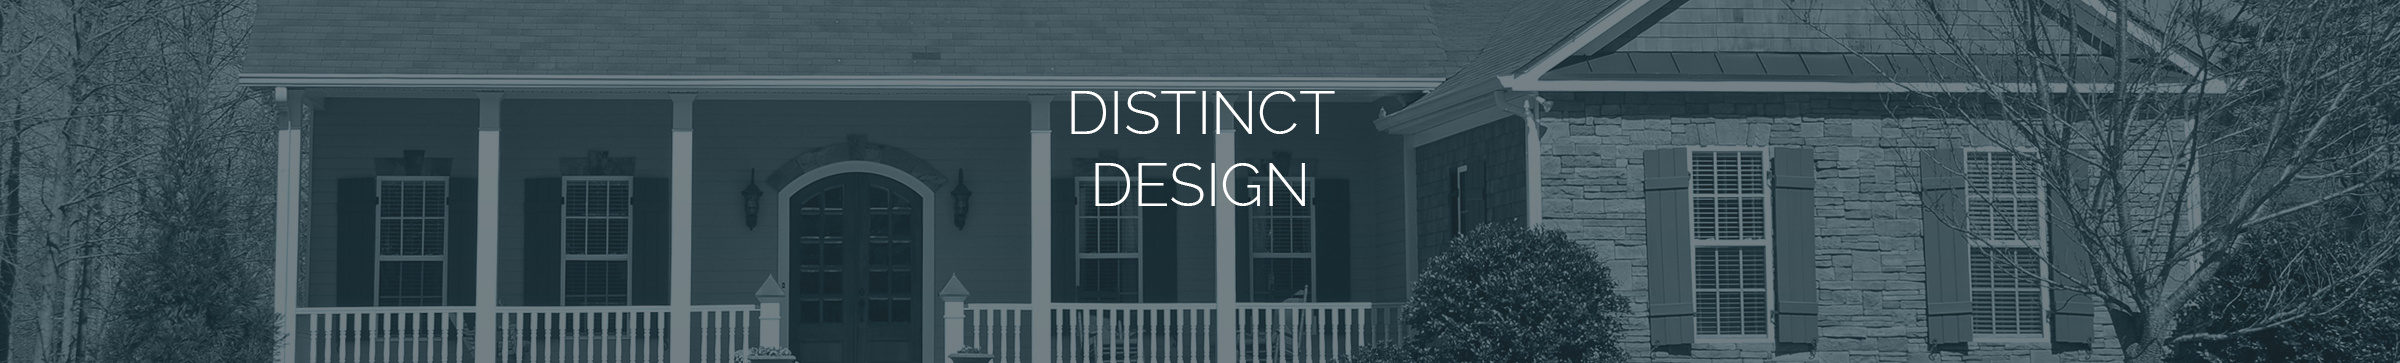 Distinct Design